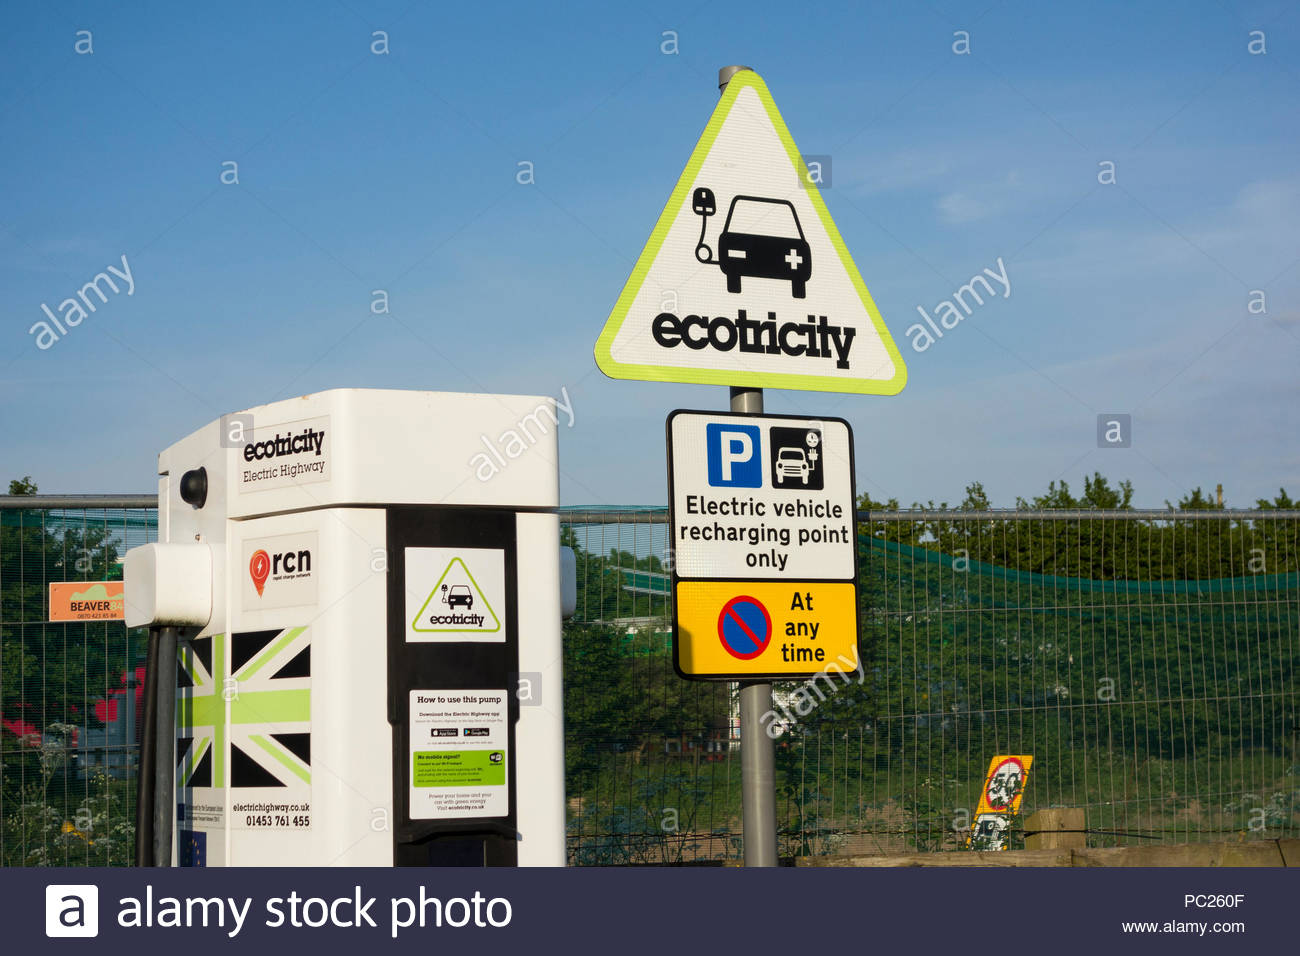 Ecotricity electric vehicle charging point at Knutsford Services on the M6 Motorway, England - Stock Image